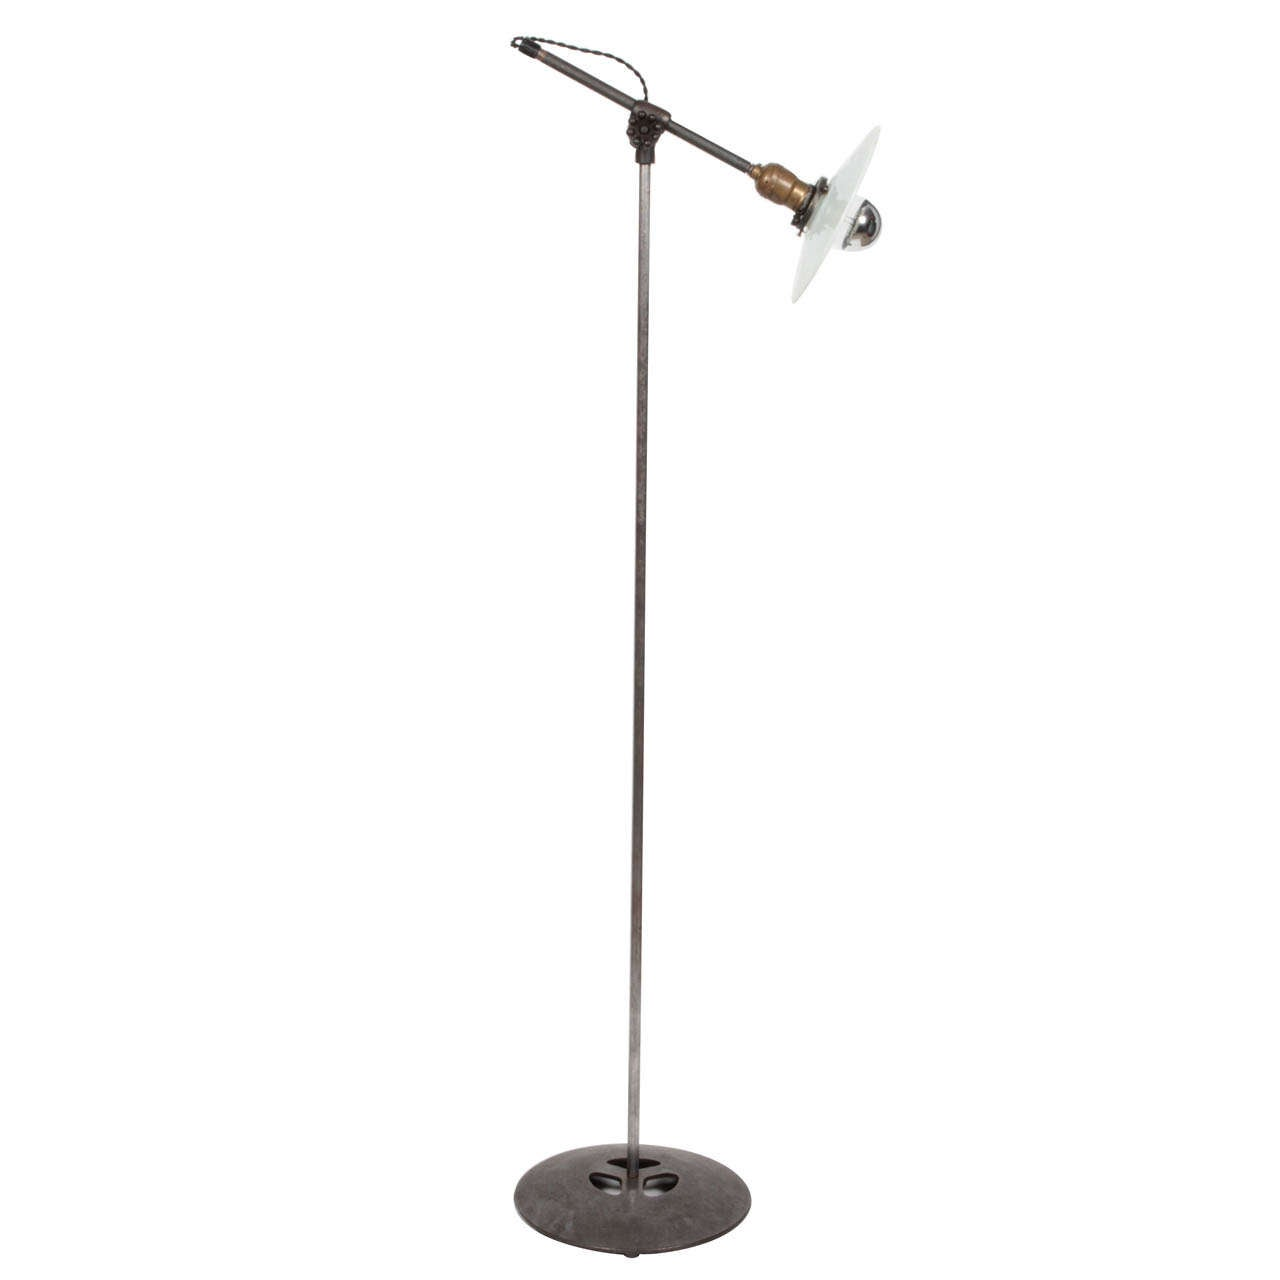 Antique Industrial Floor Lamp By O.C. White For Sale At